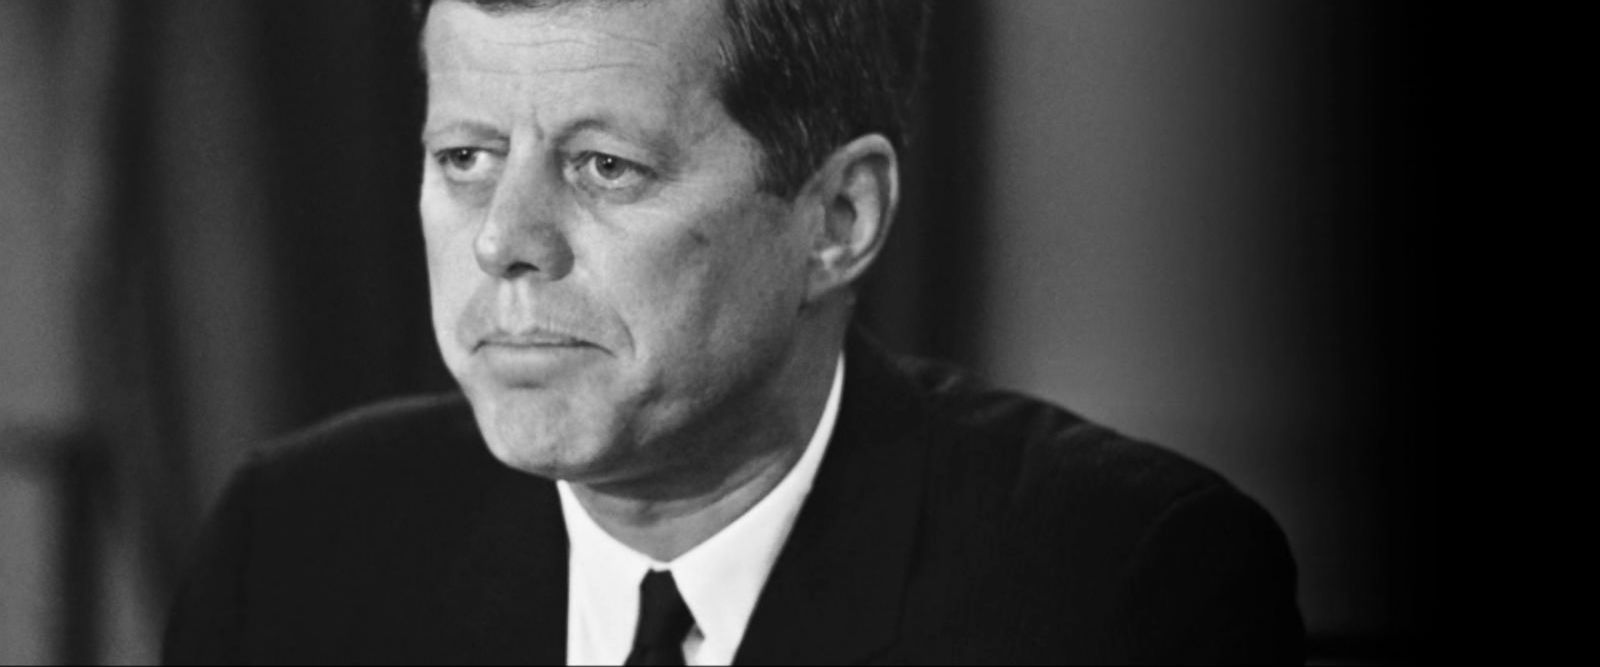 VIDEO: Trump says he will allow release of JFK assassination files